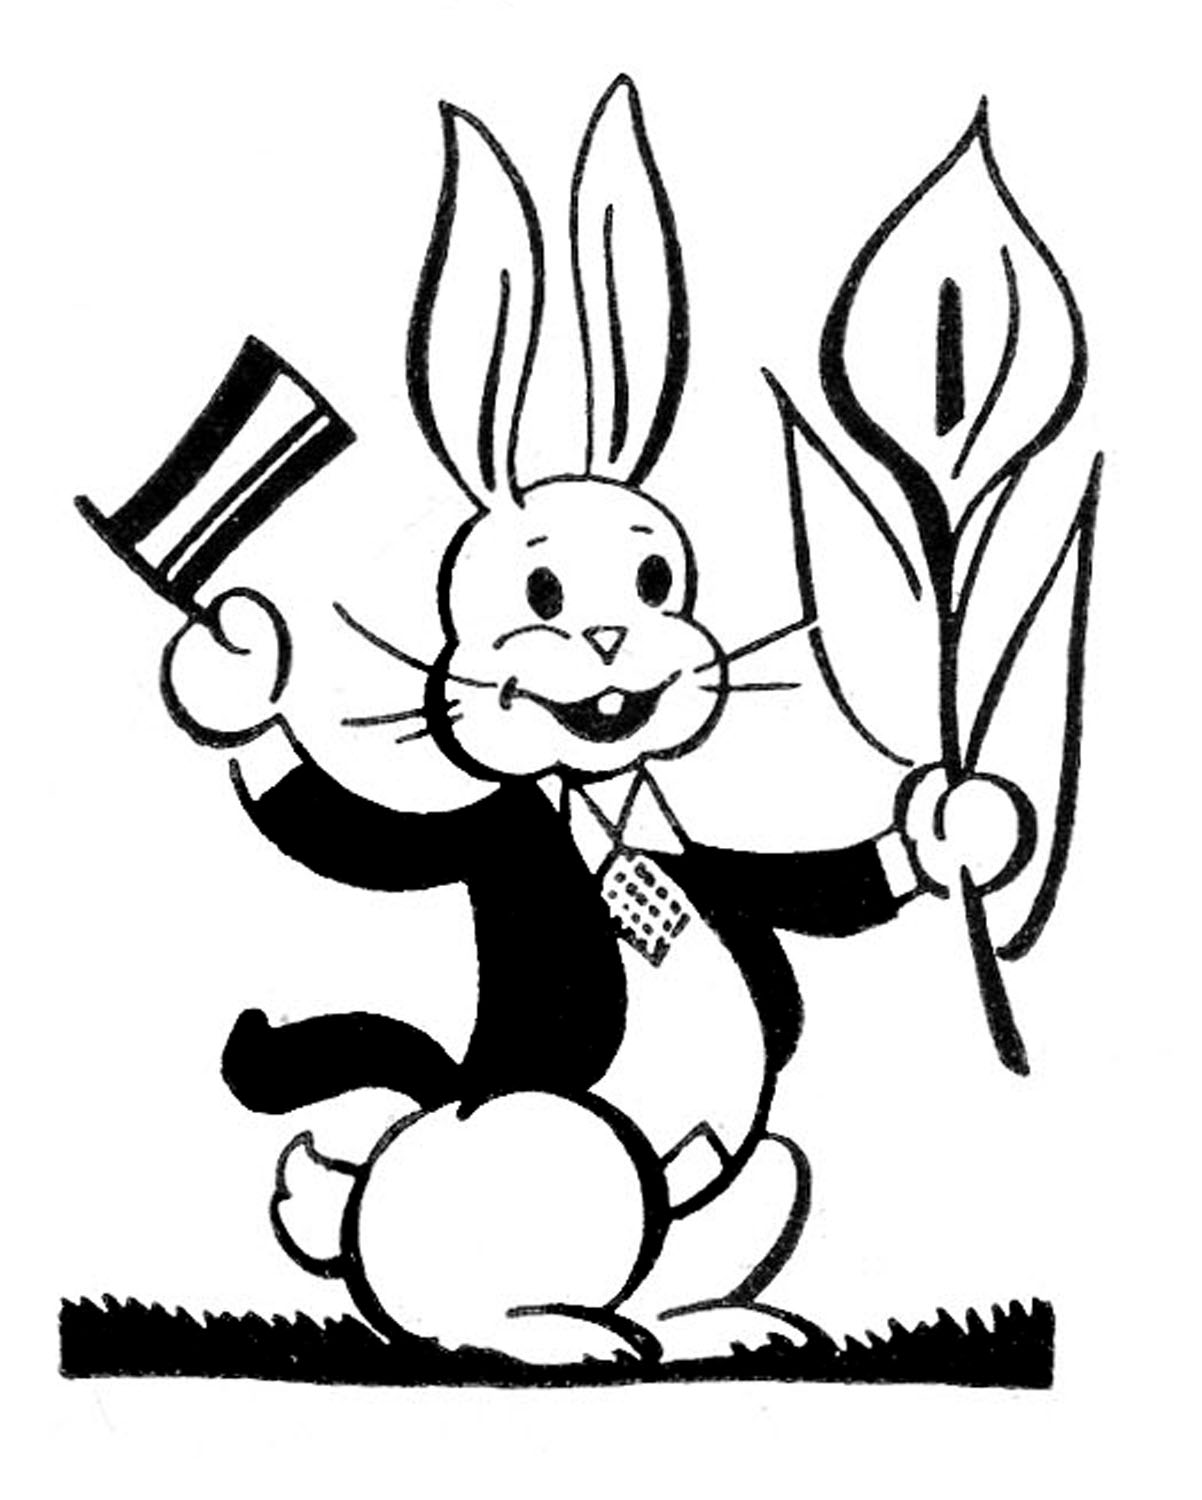 pictures of easter bunny retro easter bunny images the graphics fairy easter bunny of pictures